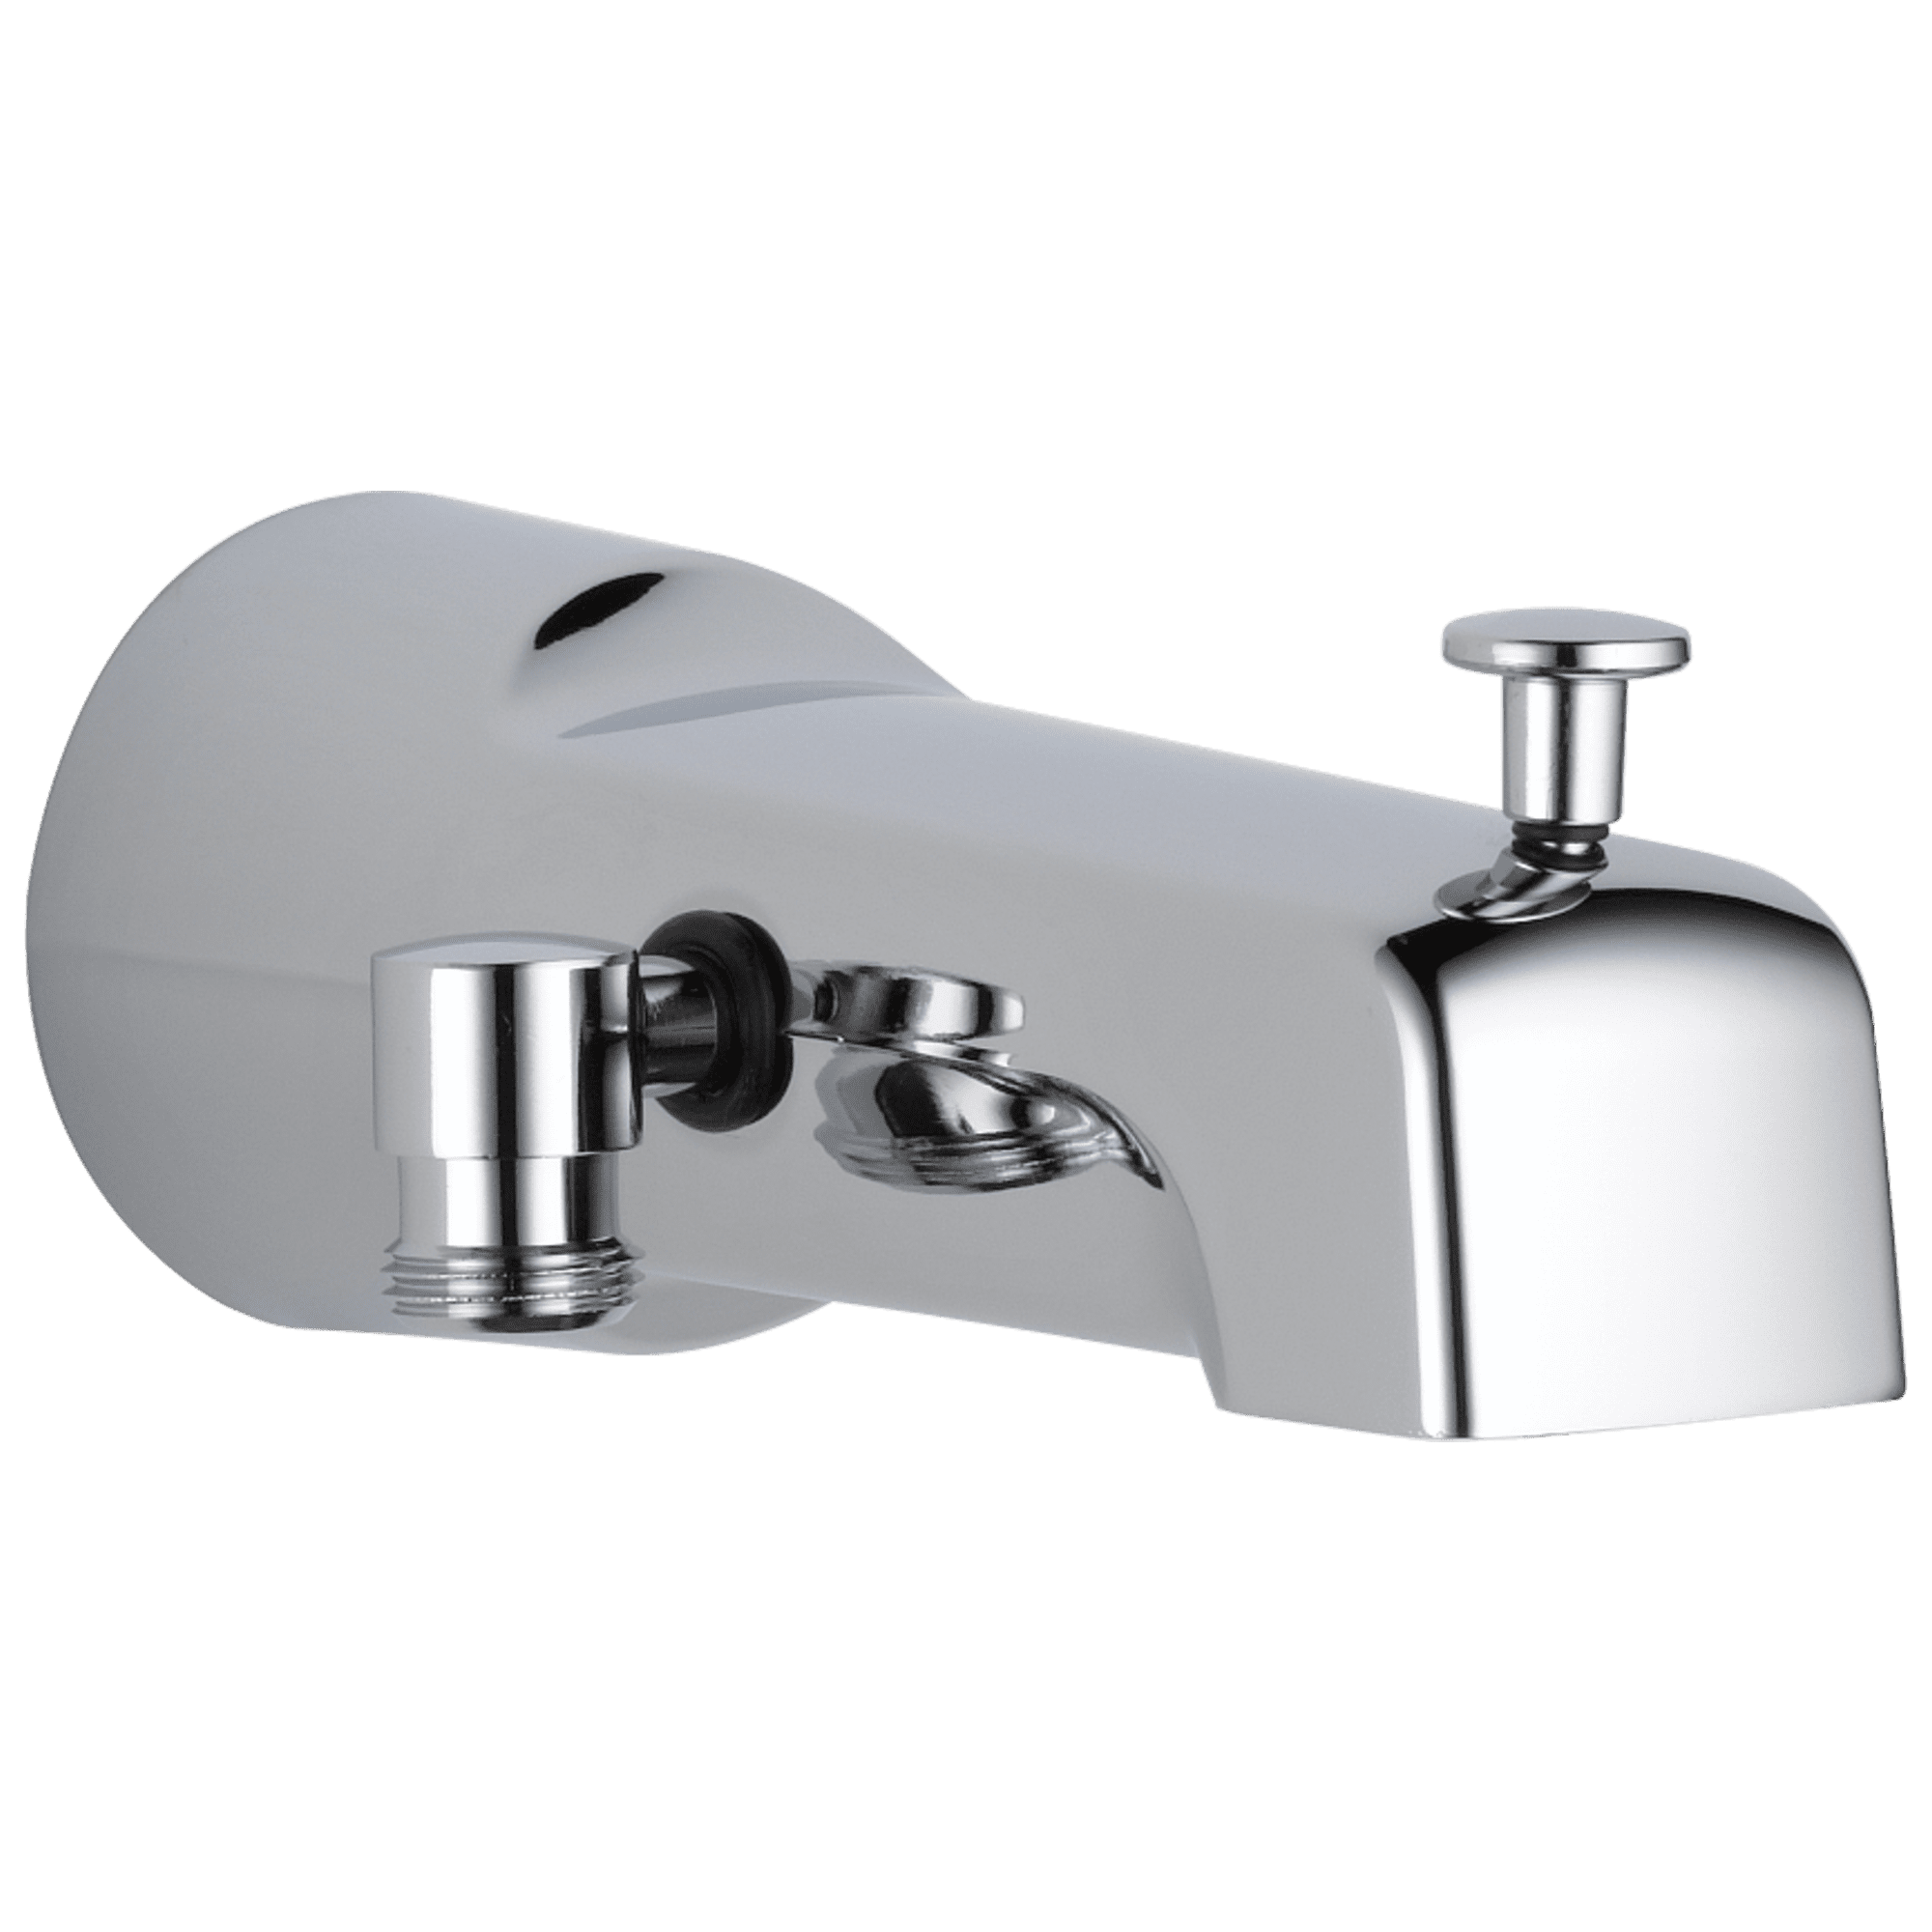 Delta 6 1 2 Diverter Tub Spout With Hand Shower Connection